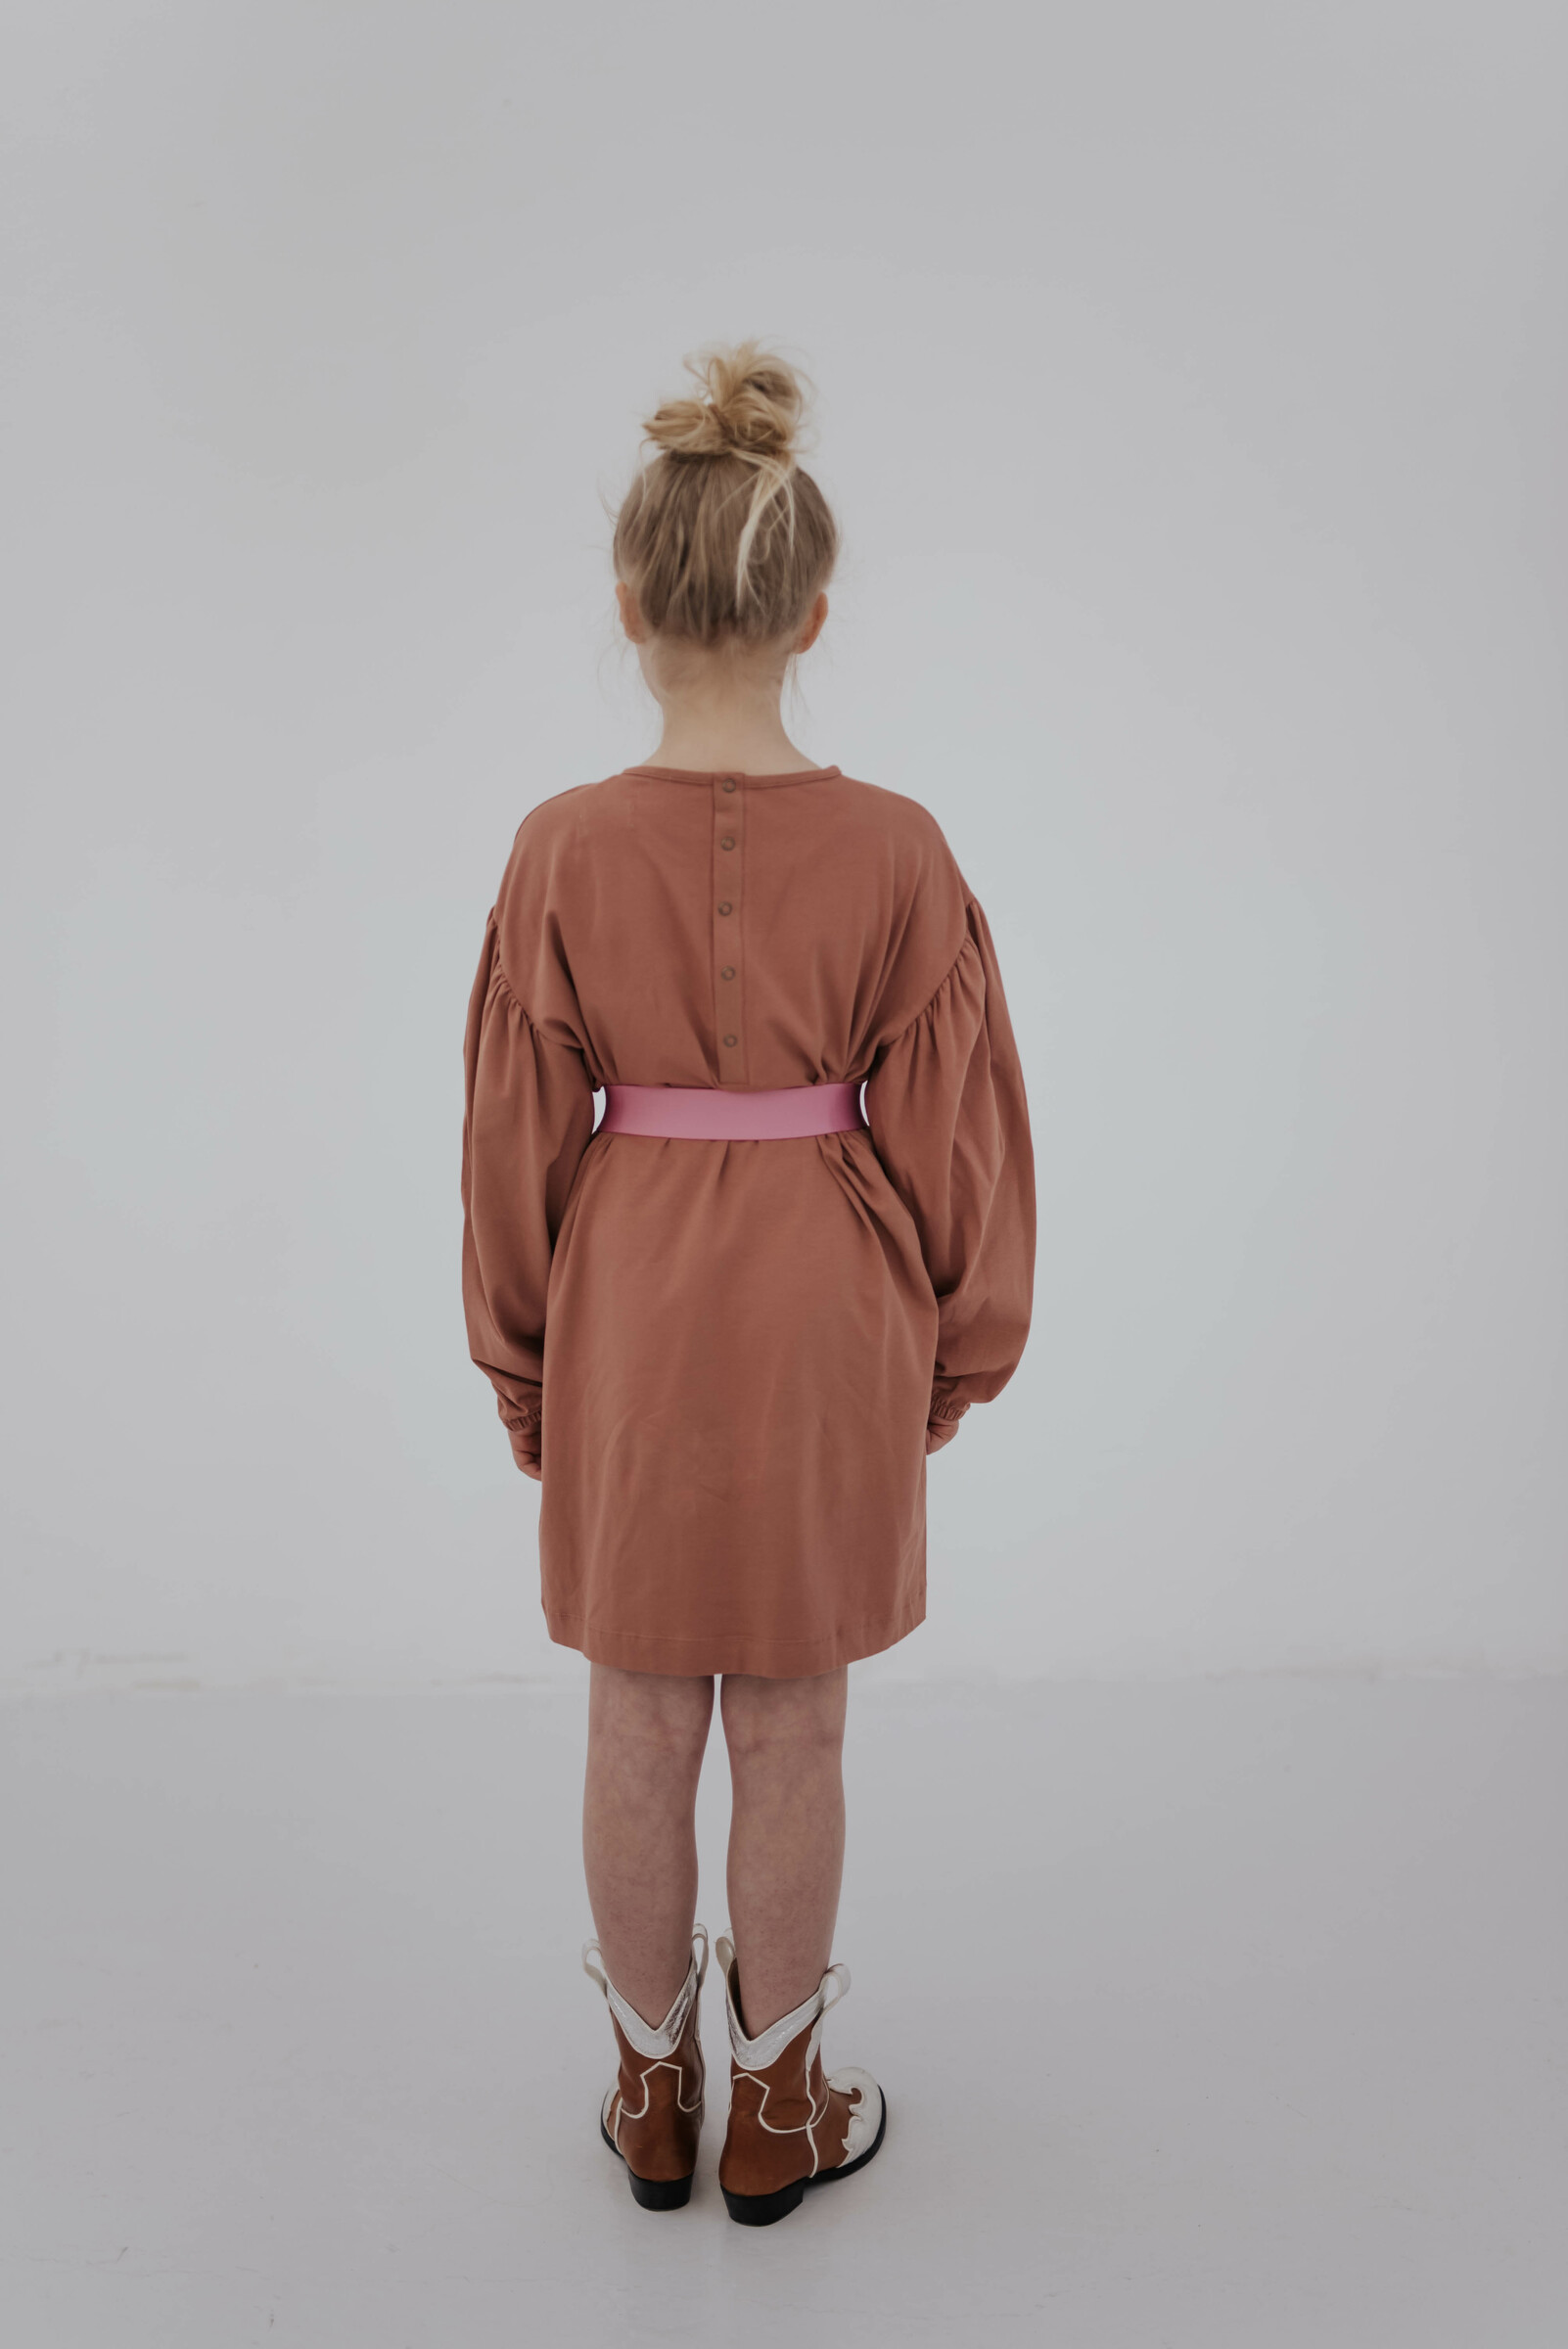 Repose AMS Lookbook images AW21 Everything3218.jpeg